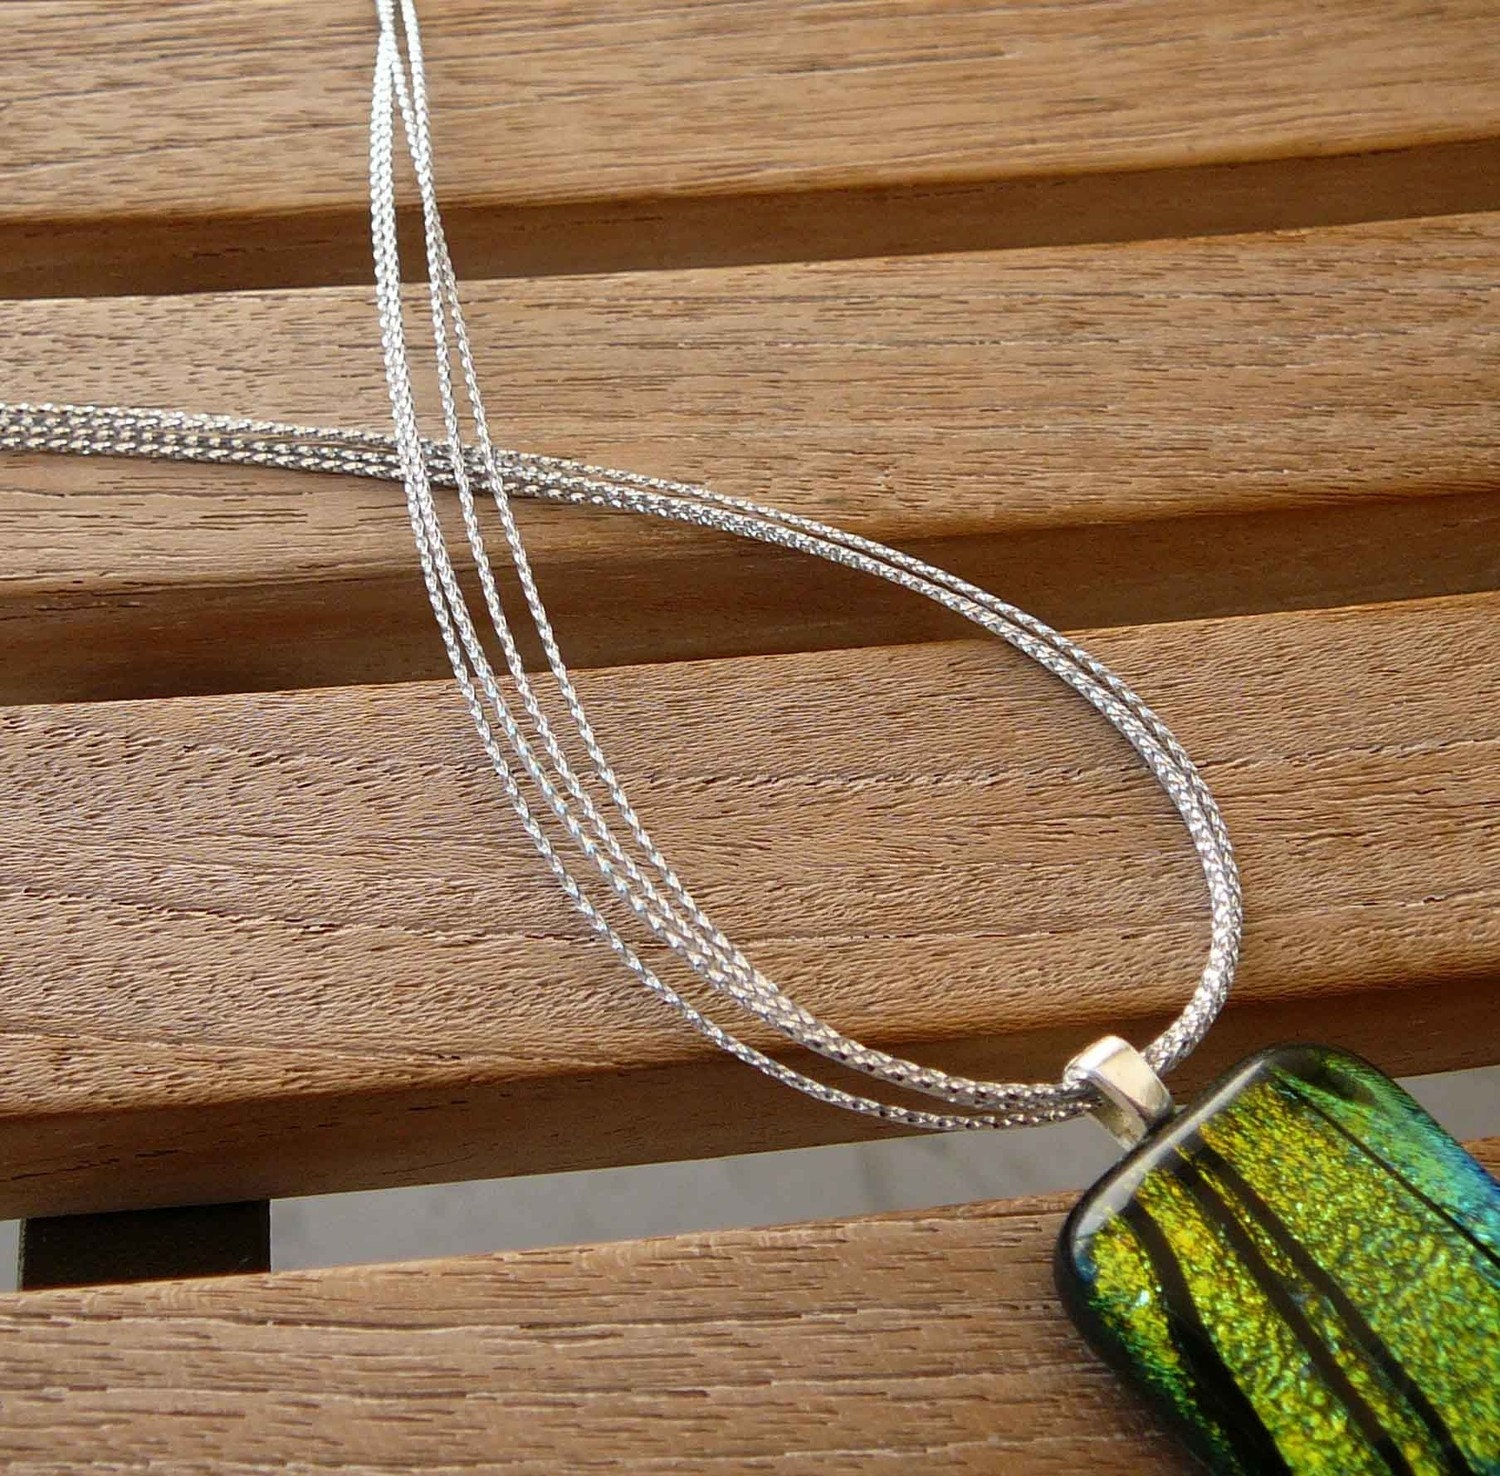 12 - Multi Strand Silver Metalic Necklace Cords - Any Length - Use w/Scrabble/Glass Tile Pendants-Handmade in USA